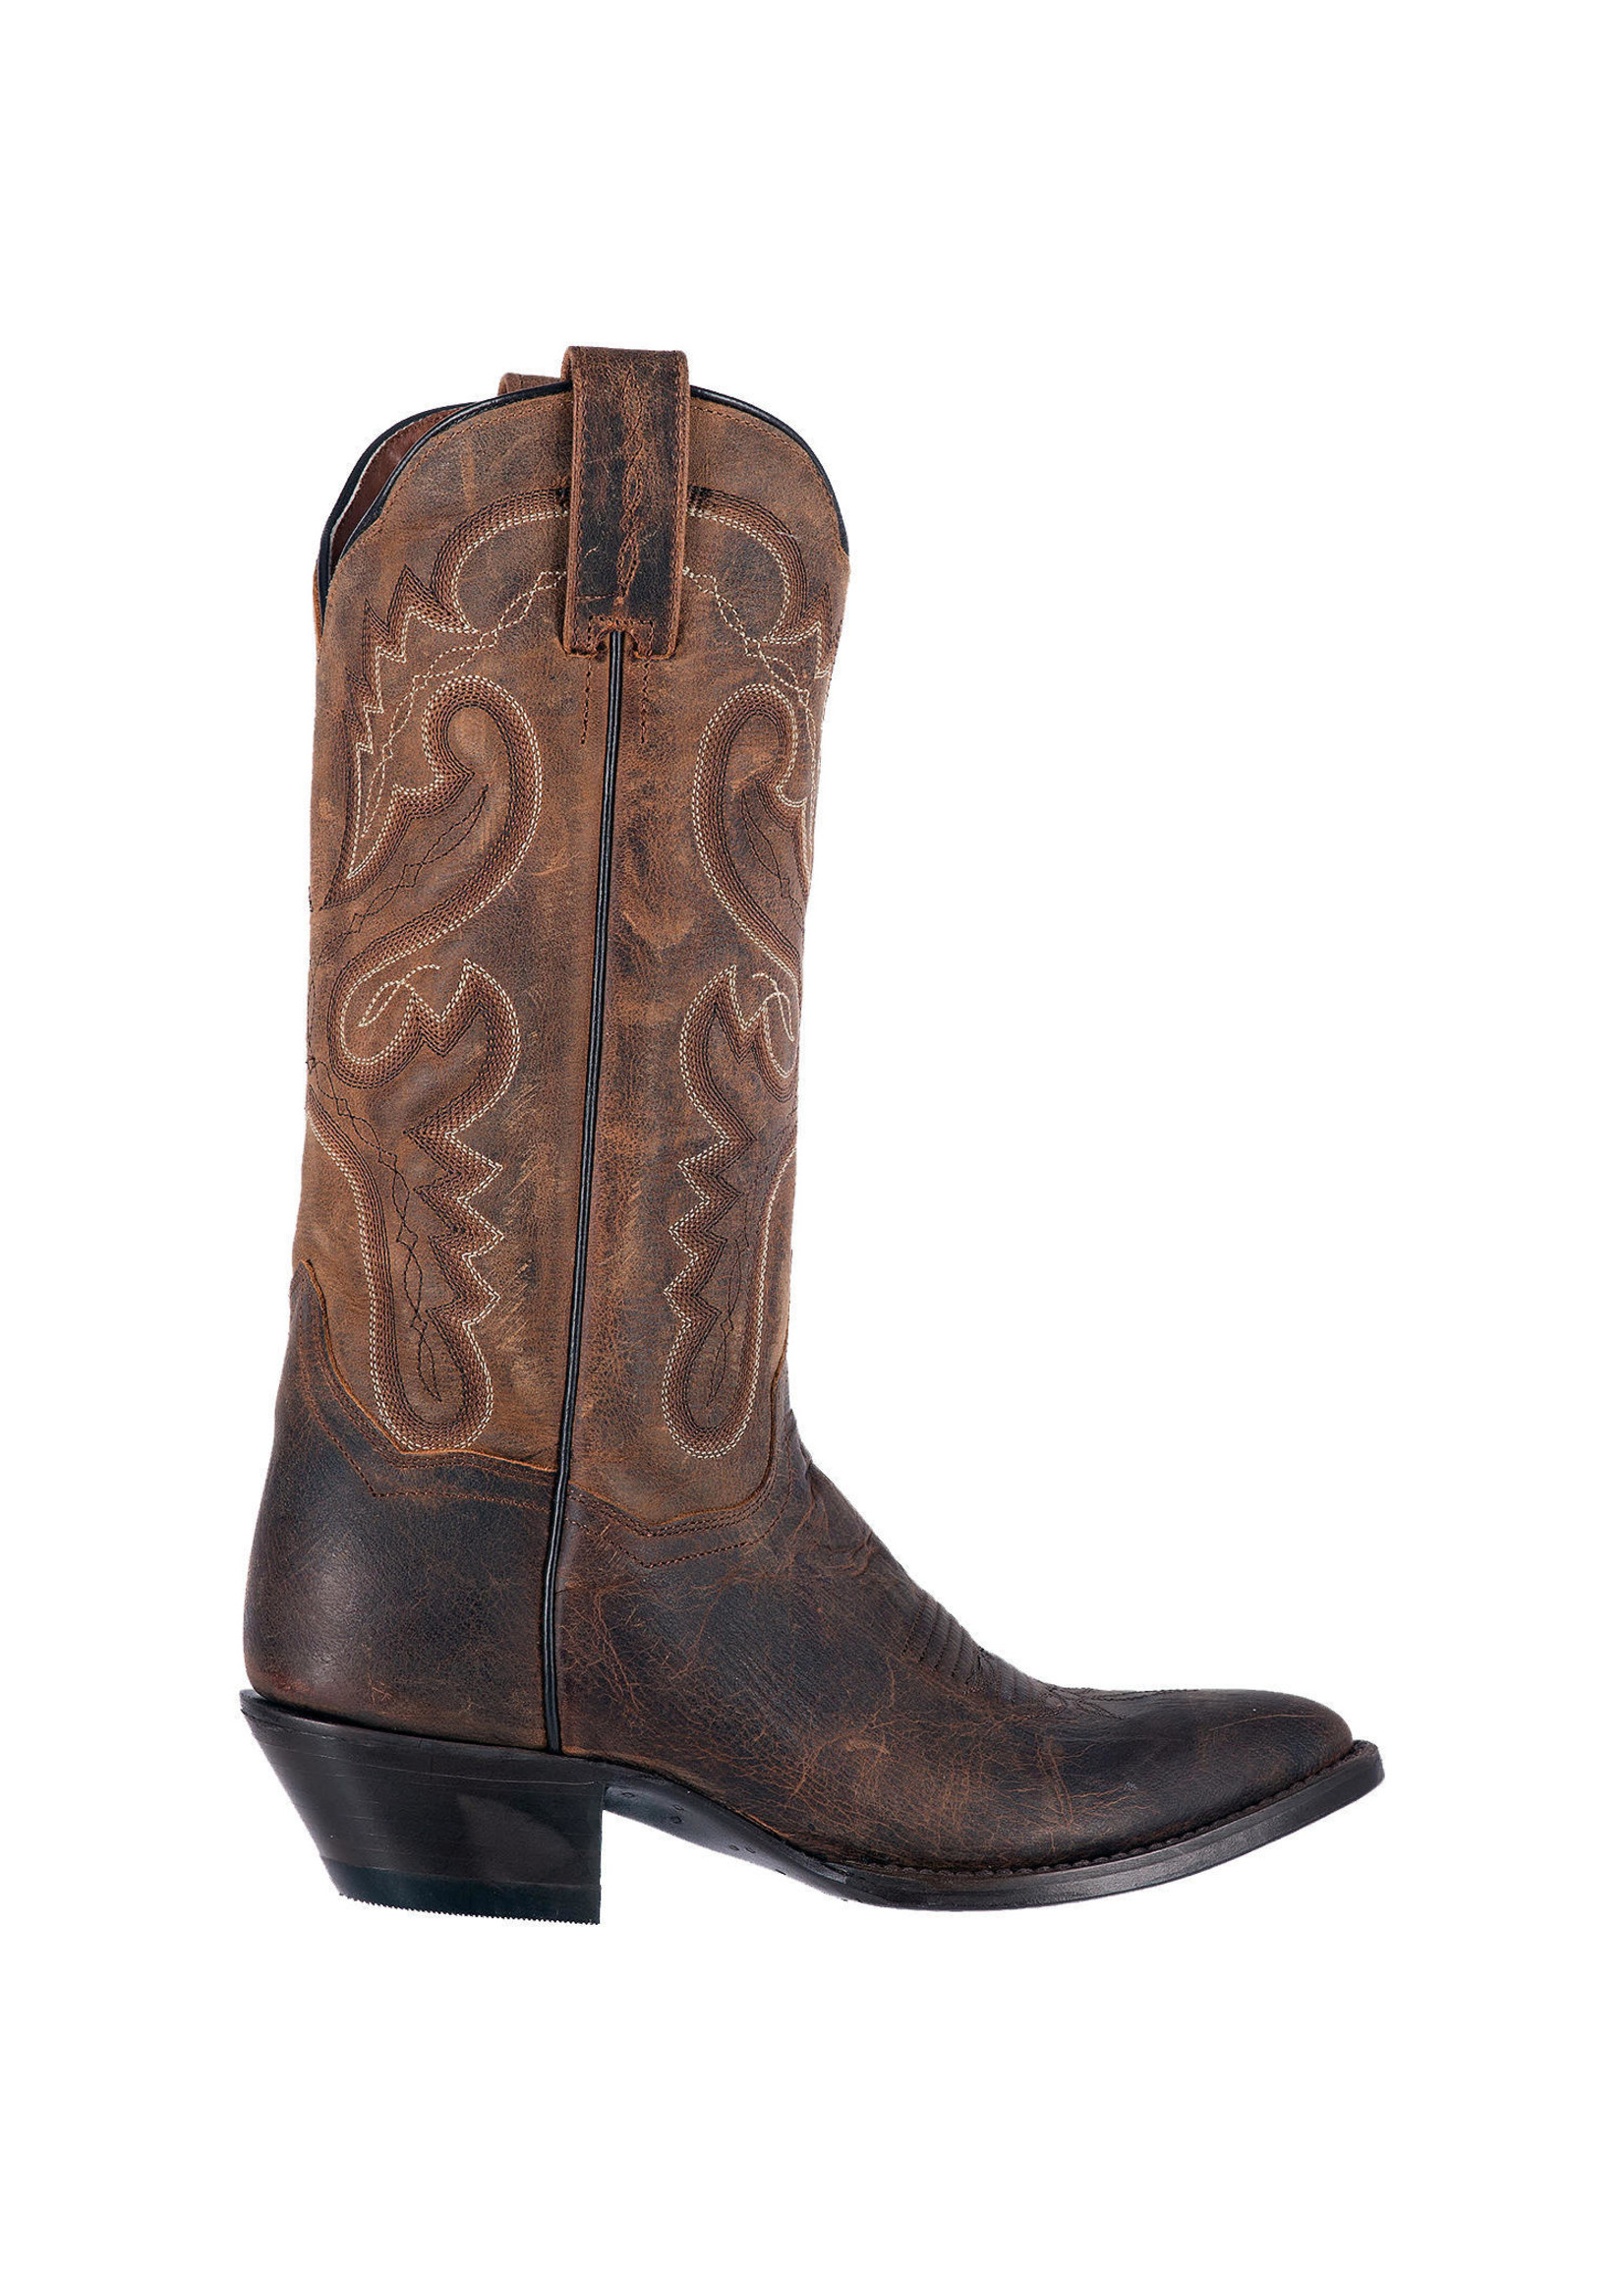 Dan Post WOMEN'S MARLA LEATHER BOOT DP3571